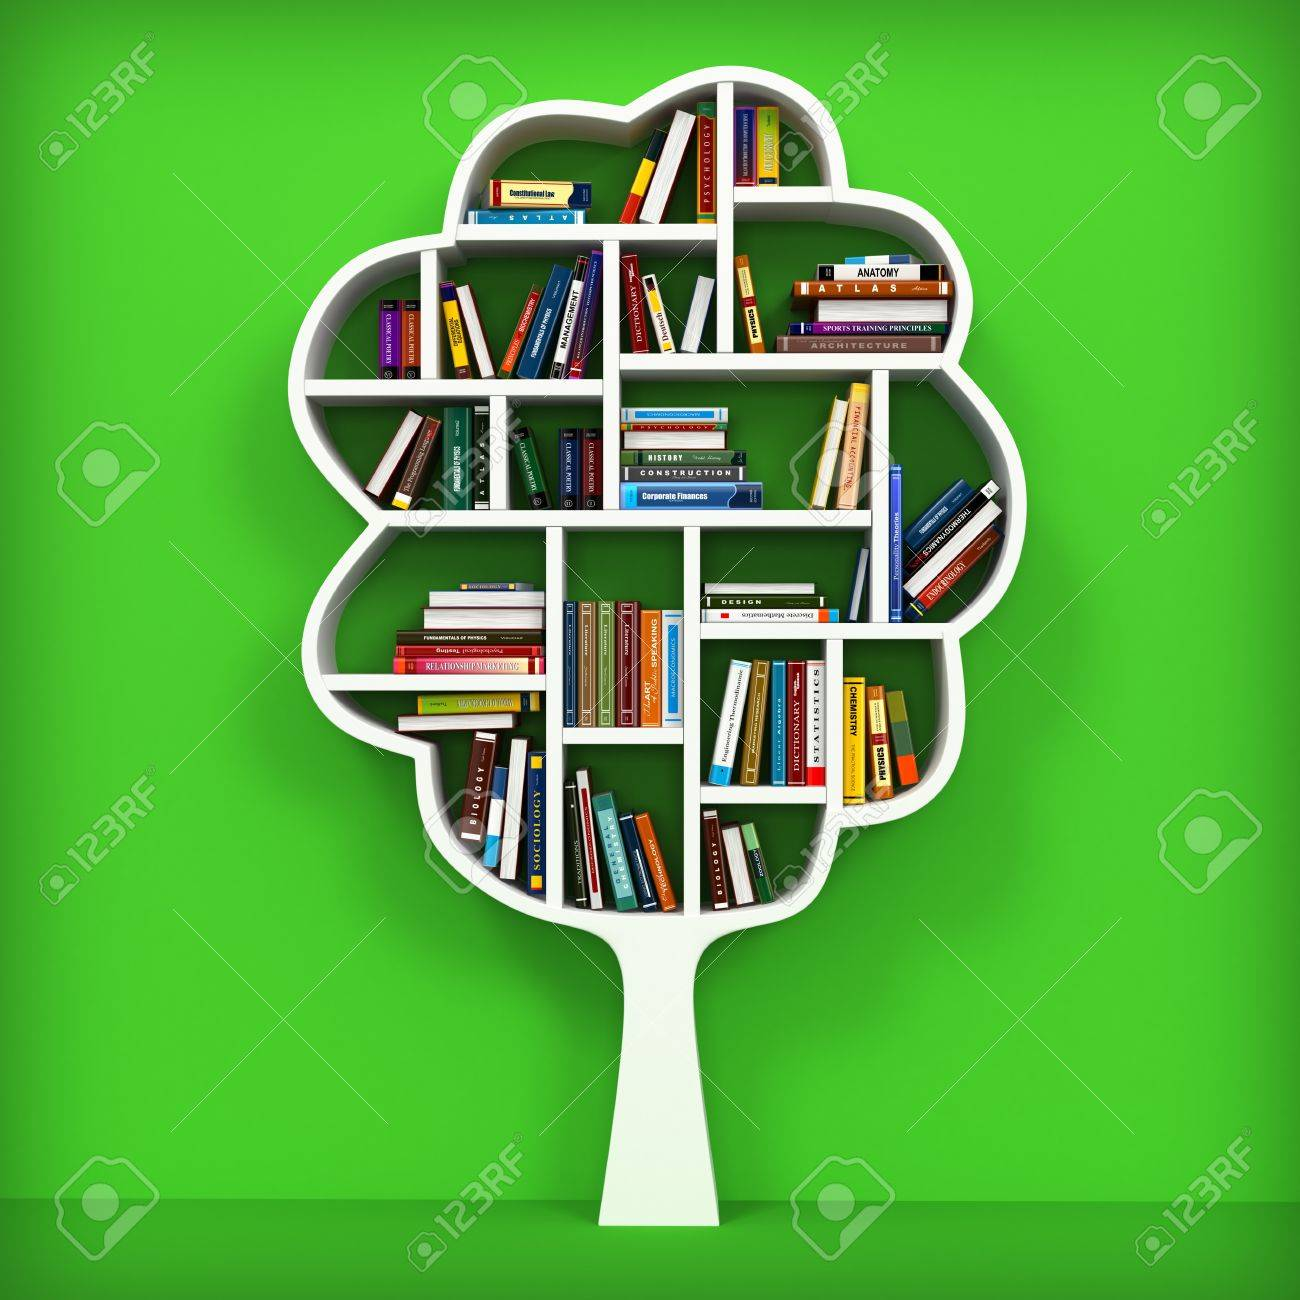 Bookshelf on white background Stock Photo - 20622633